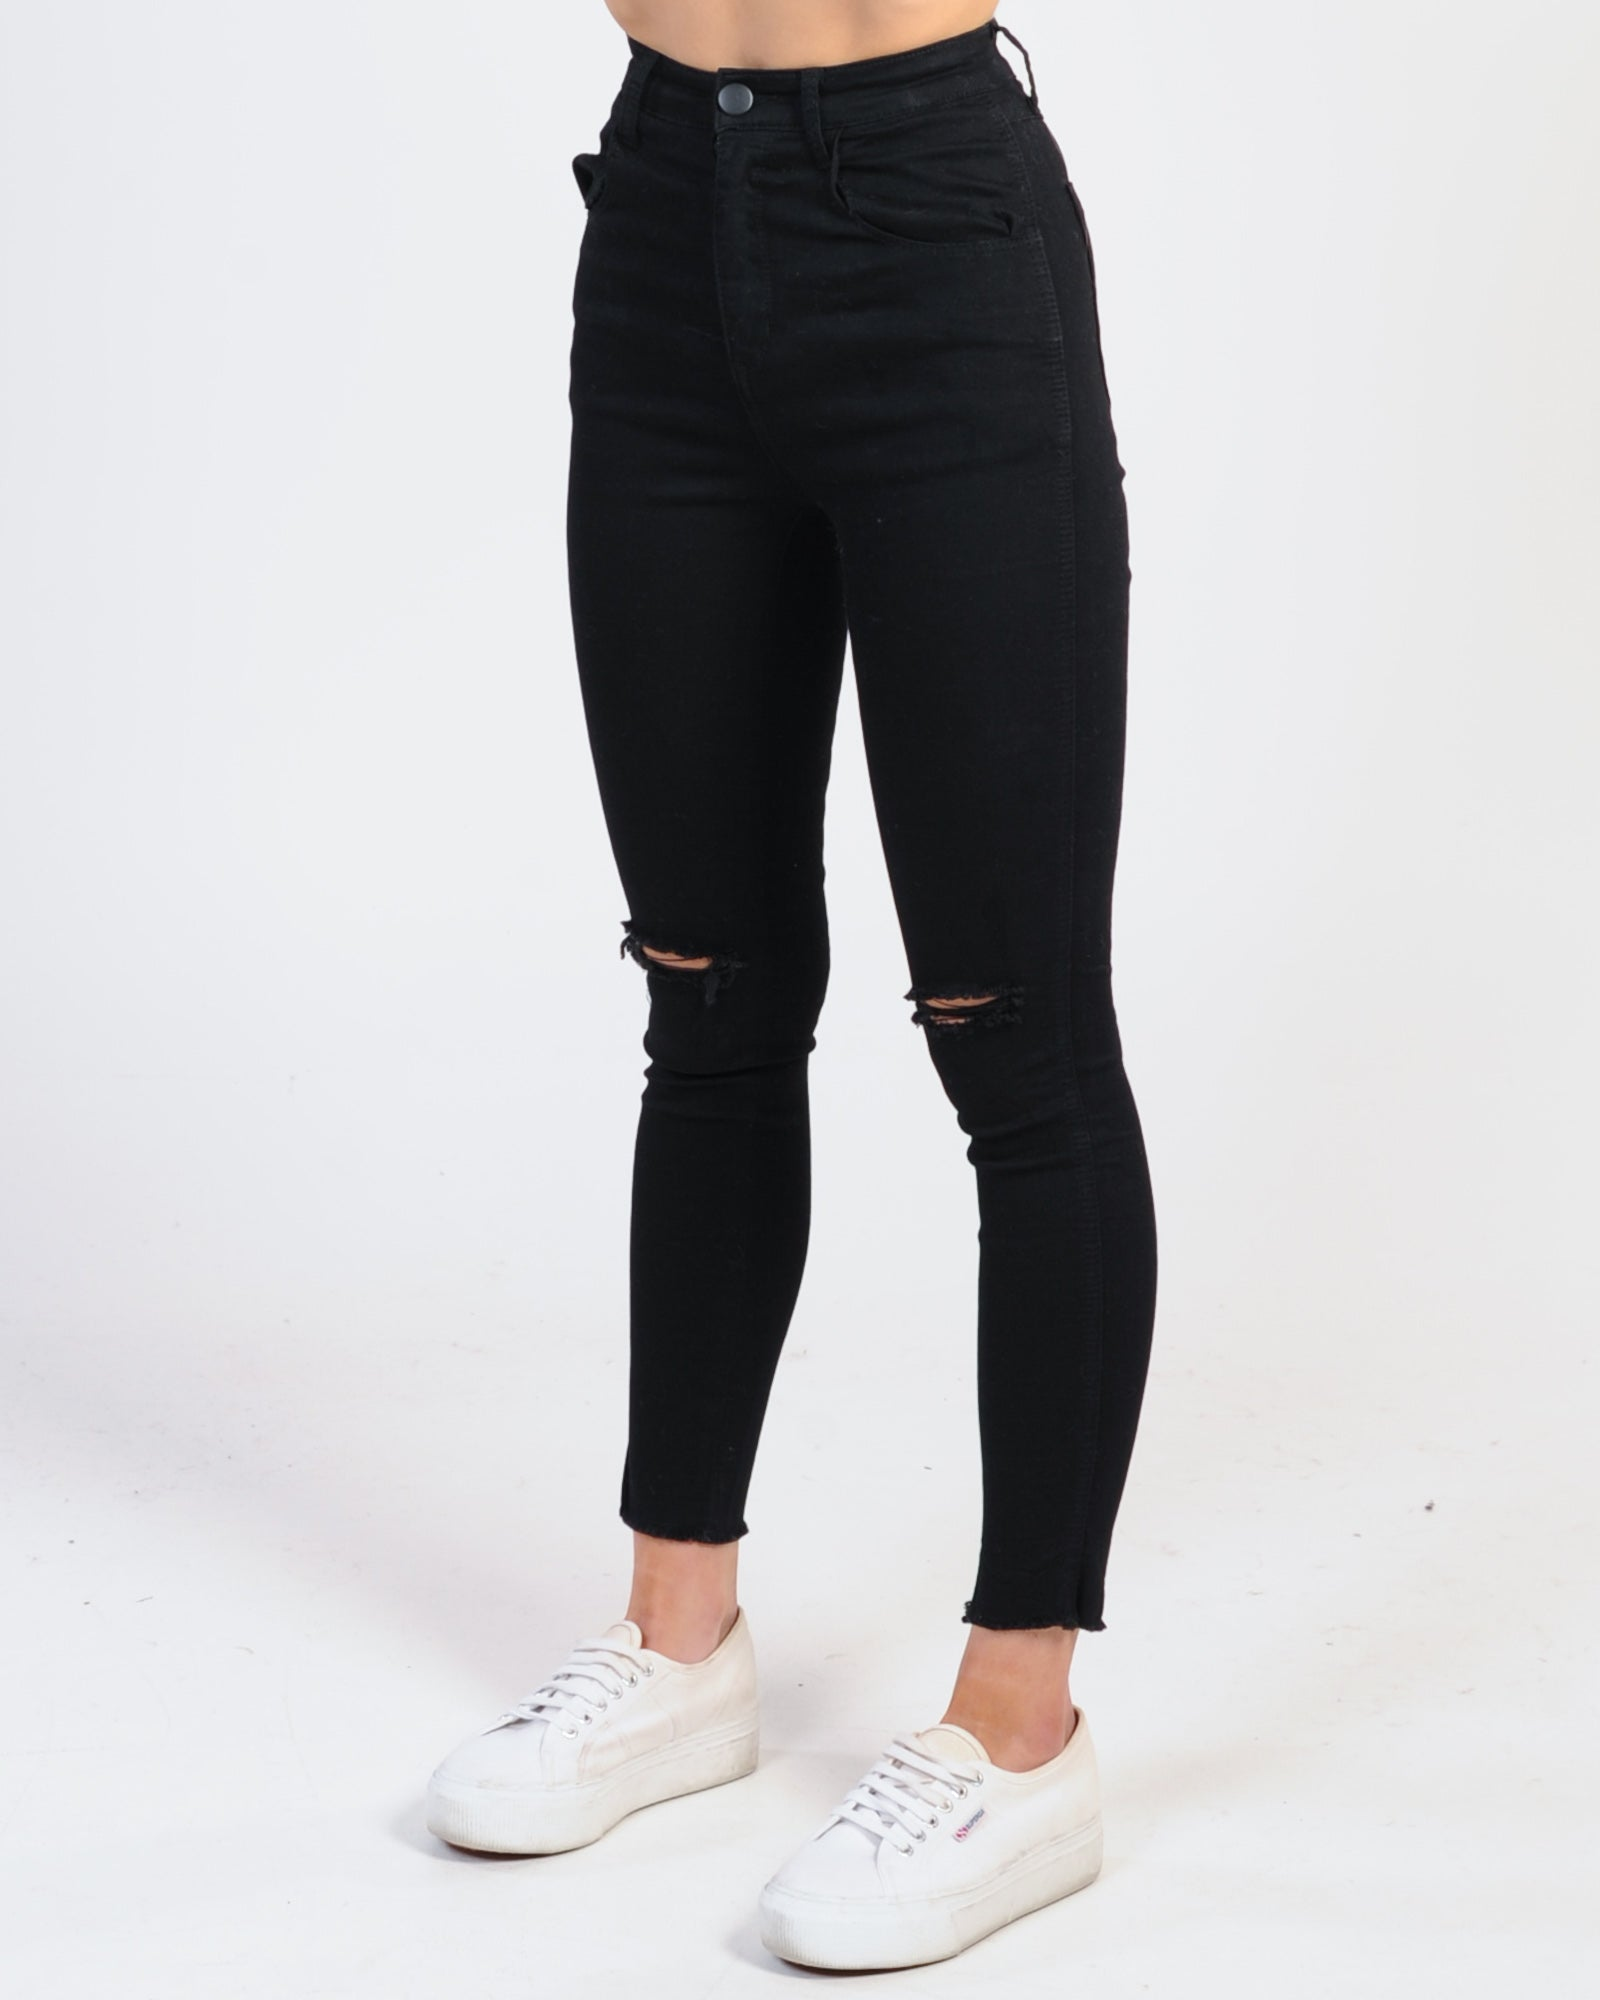 La High Waisted 3/4 Jeans - Black